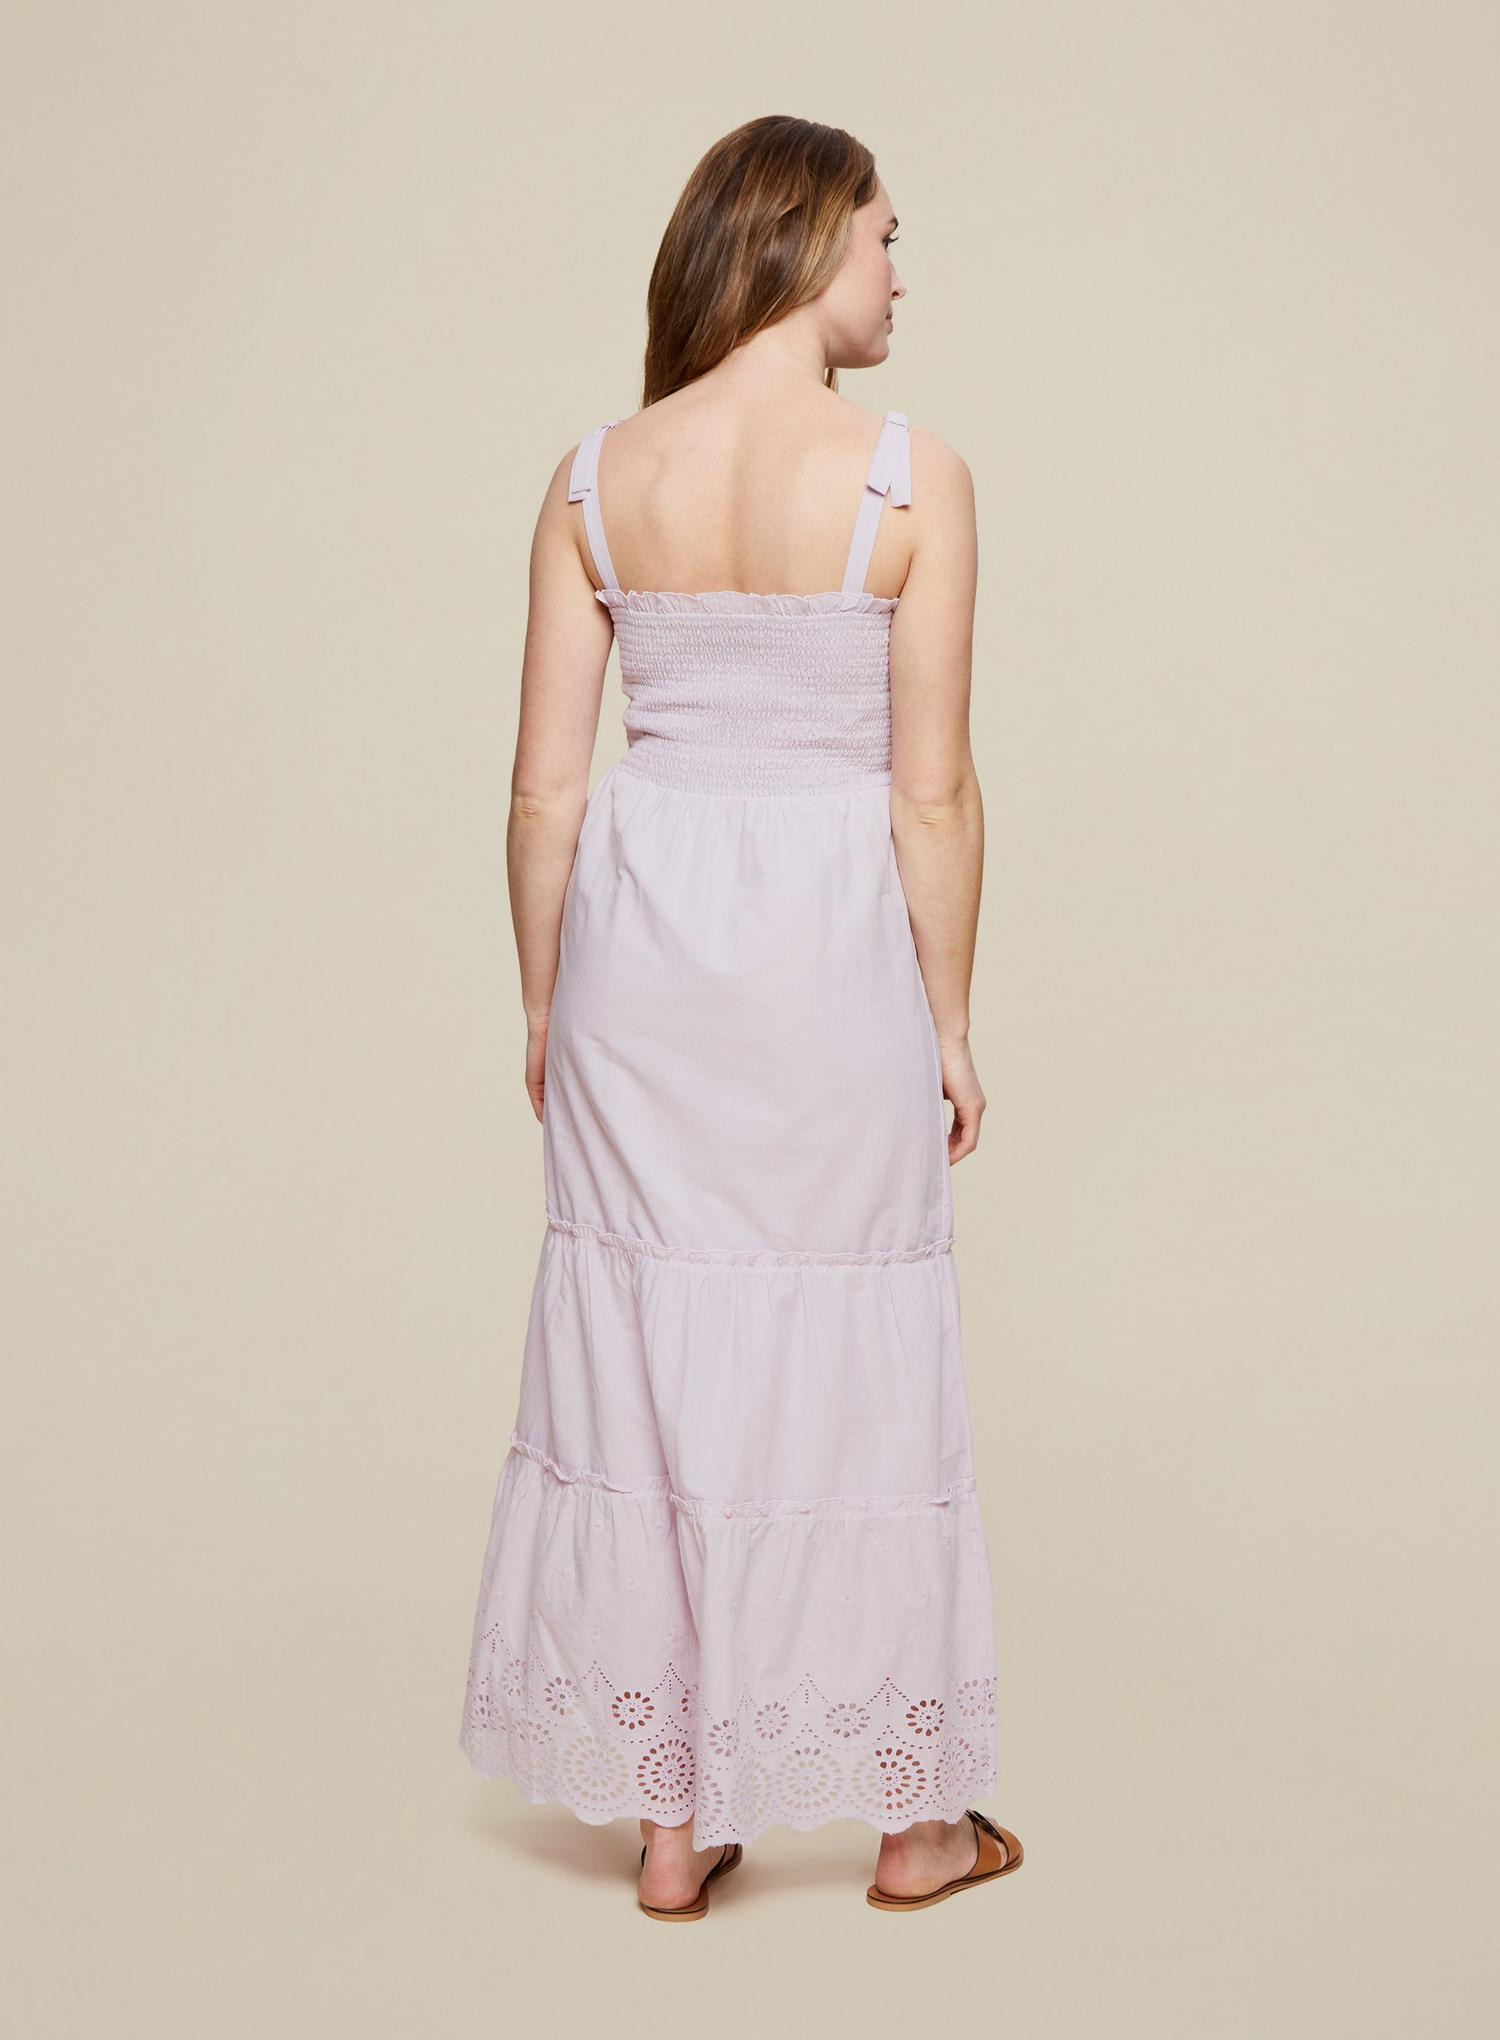 156 Lilac Broderie Camisole Dress image number 4